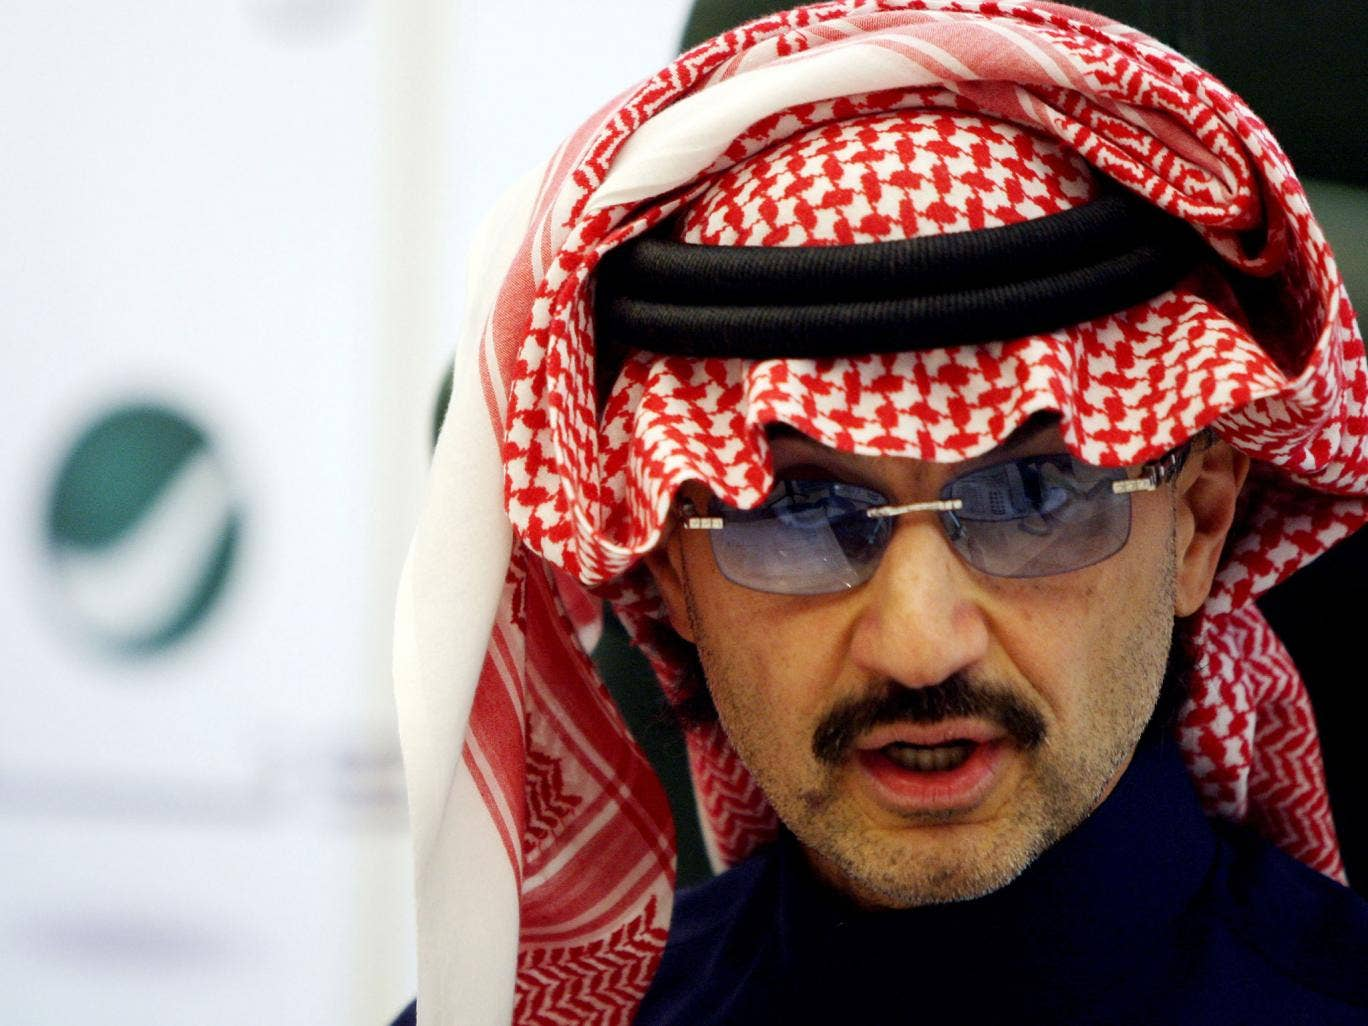 Prince Alwaleed bin Talal has been deeply offended by Forbes Magazine placing him 26th on its rich list